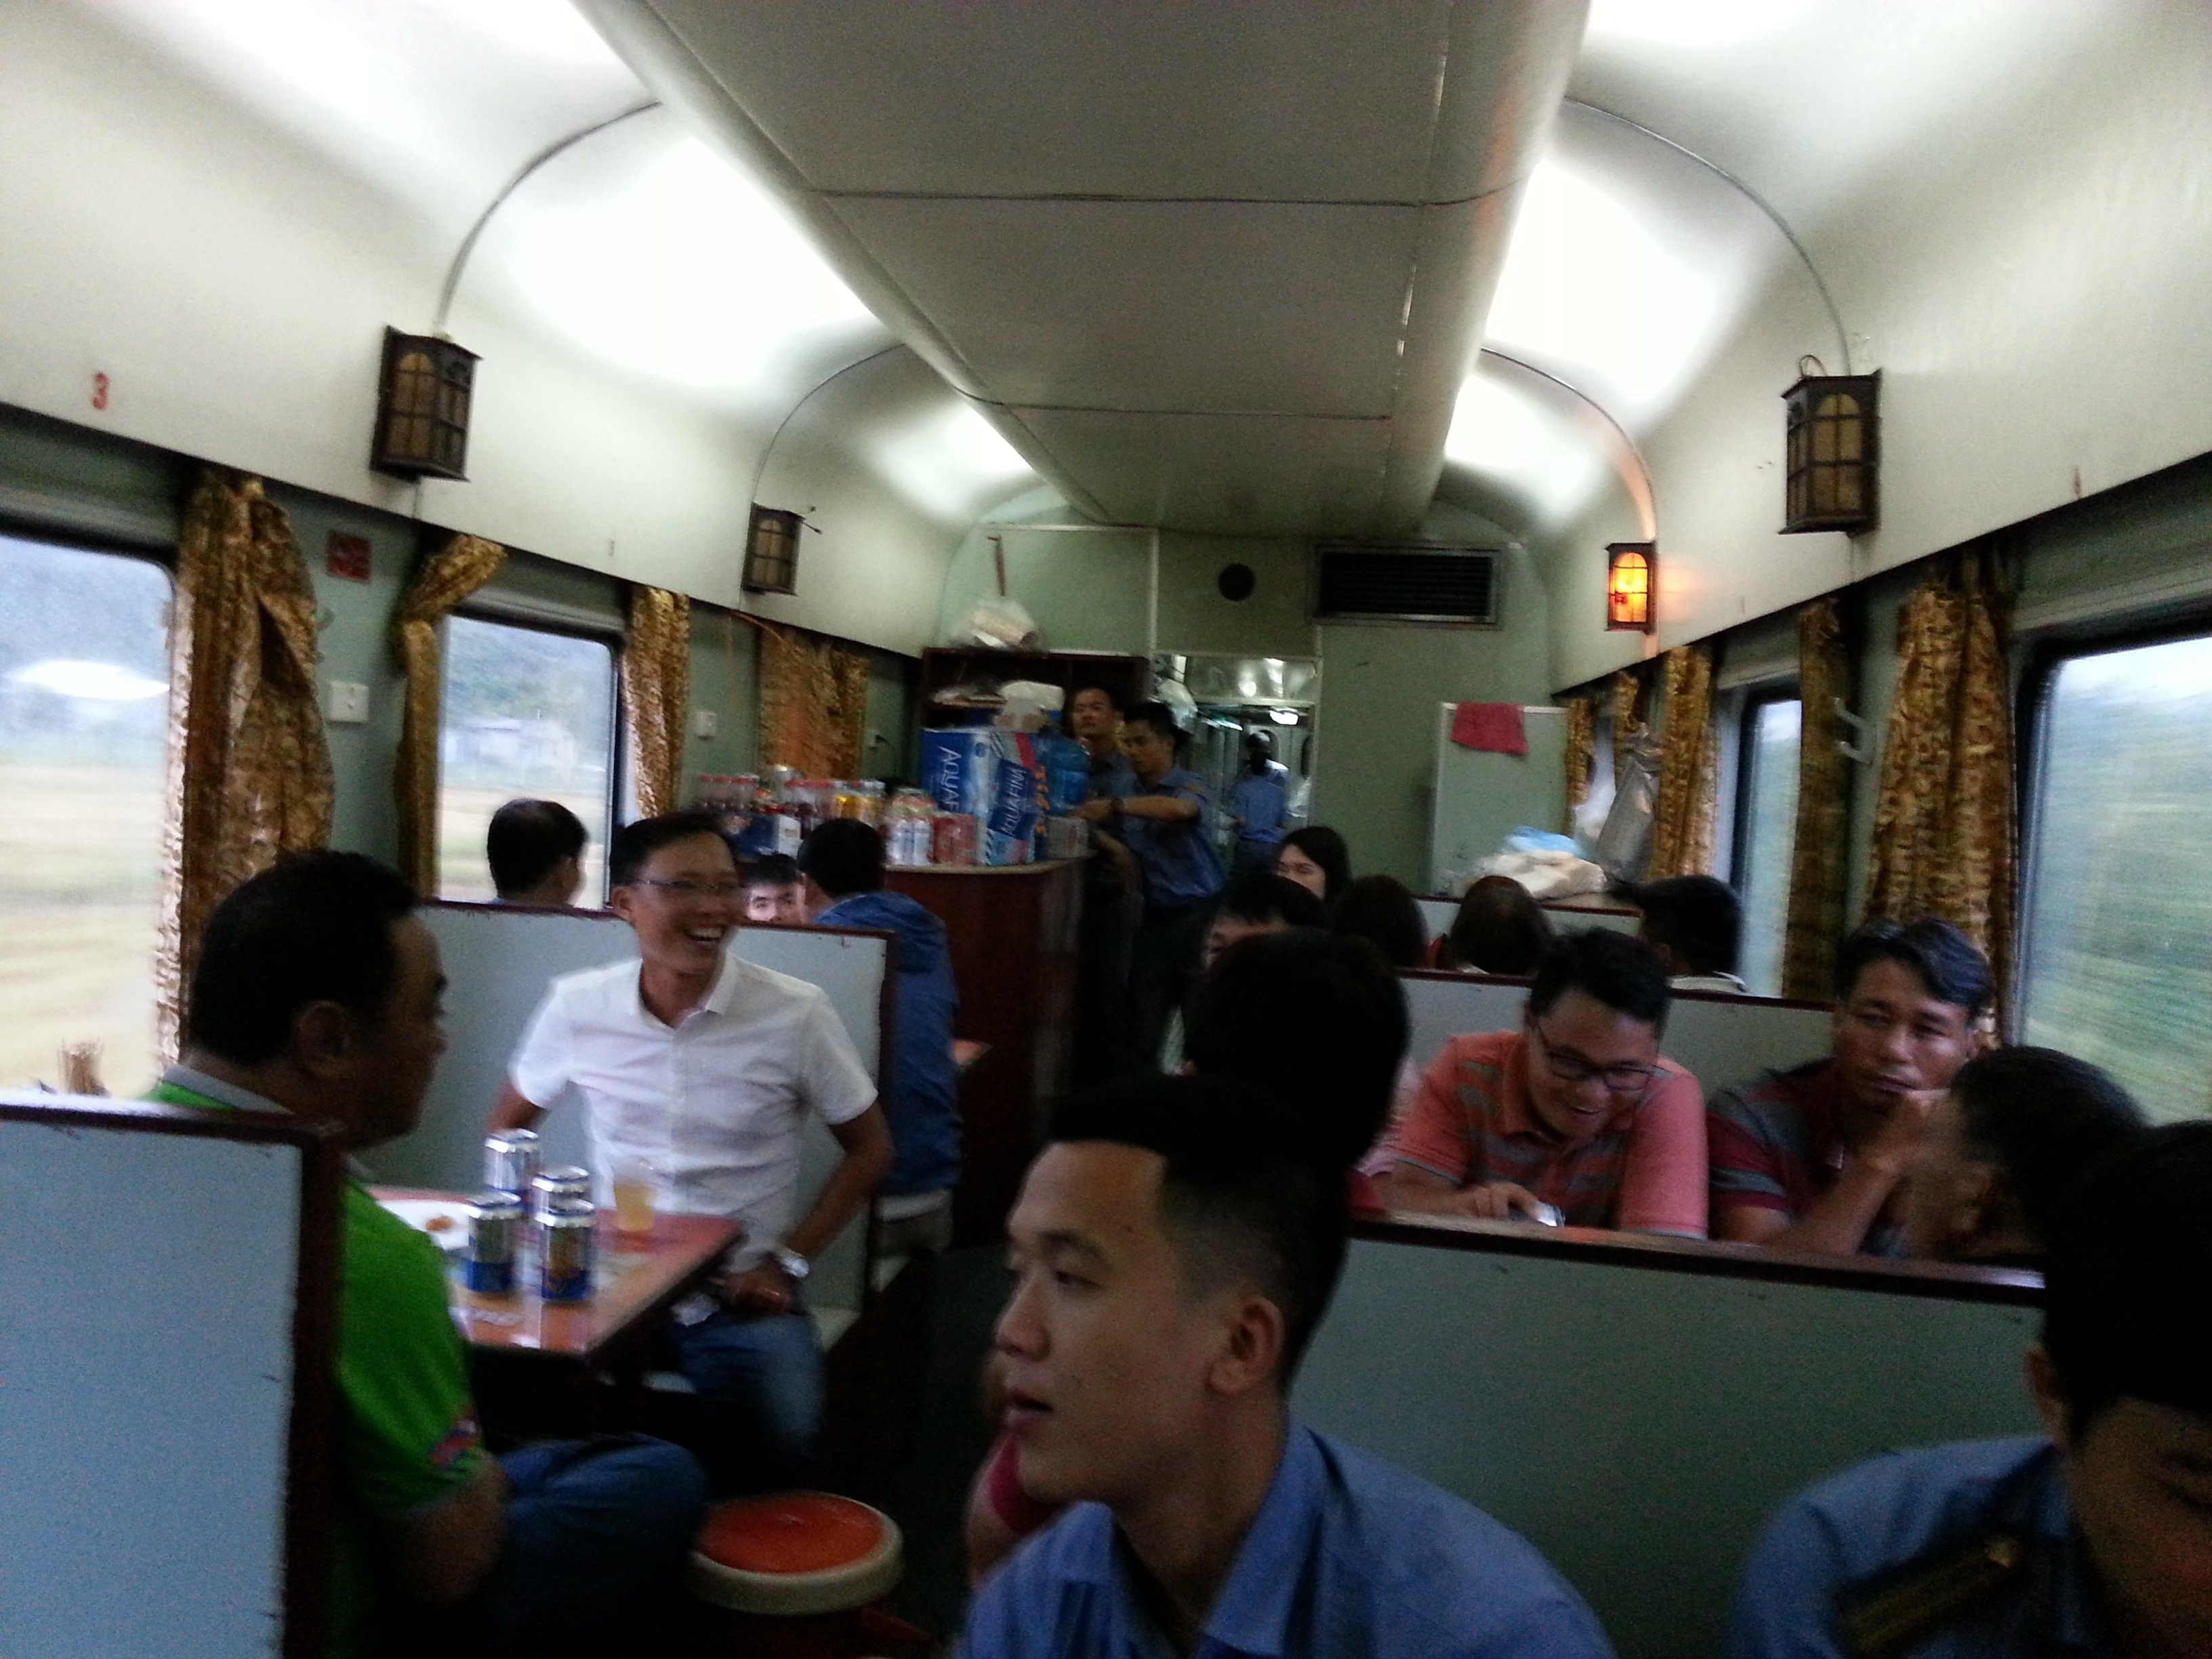 In Vietnam men drink beer on the train